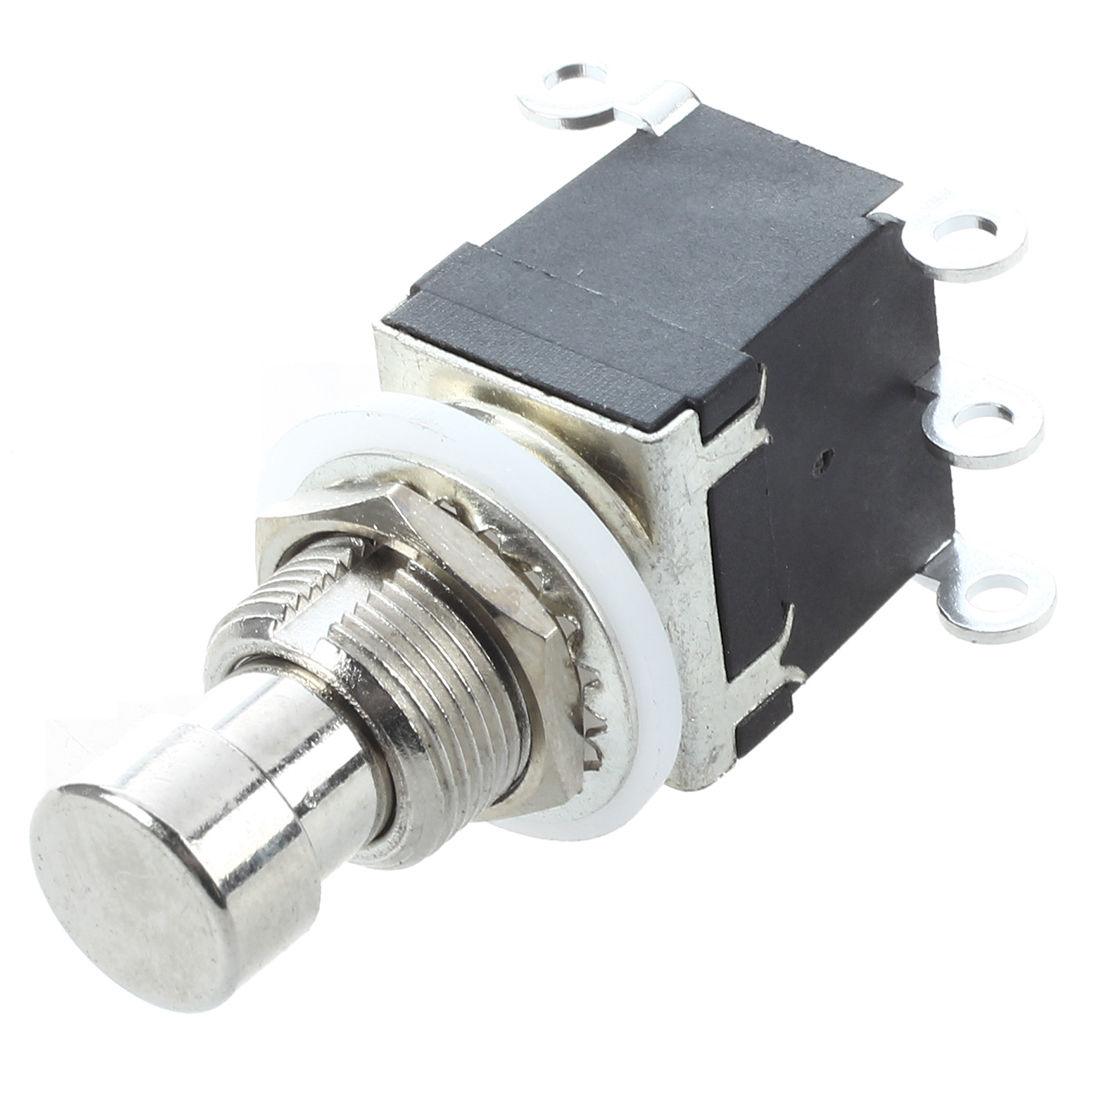 6Pins DPDT Momentary Stomp Foot Switch for Guitar AC 250V/2125V/4A image